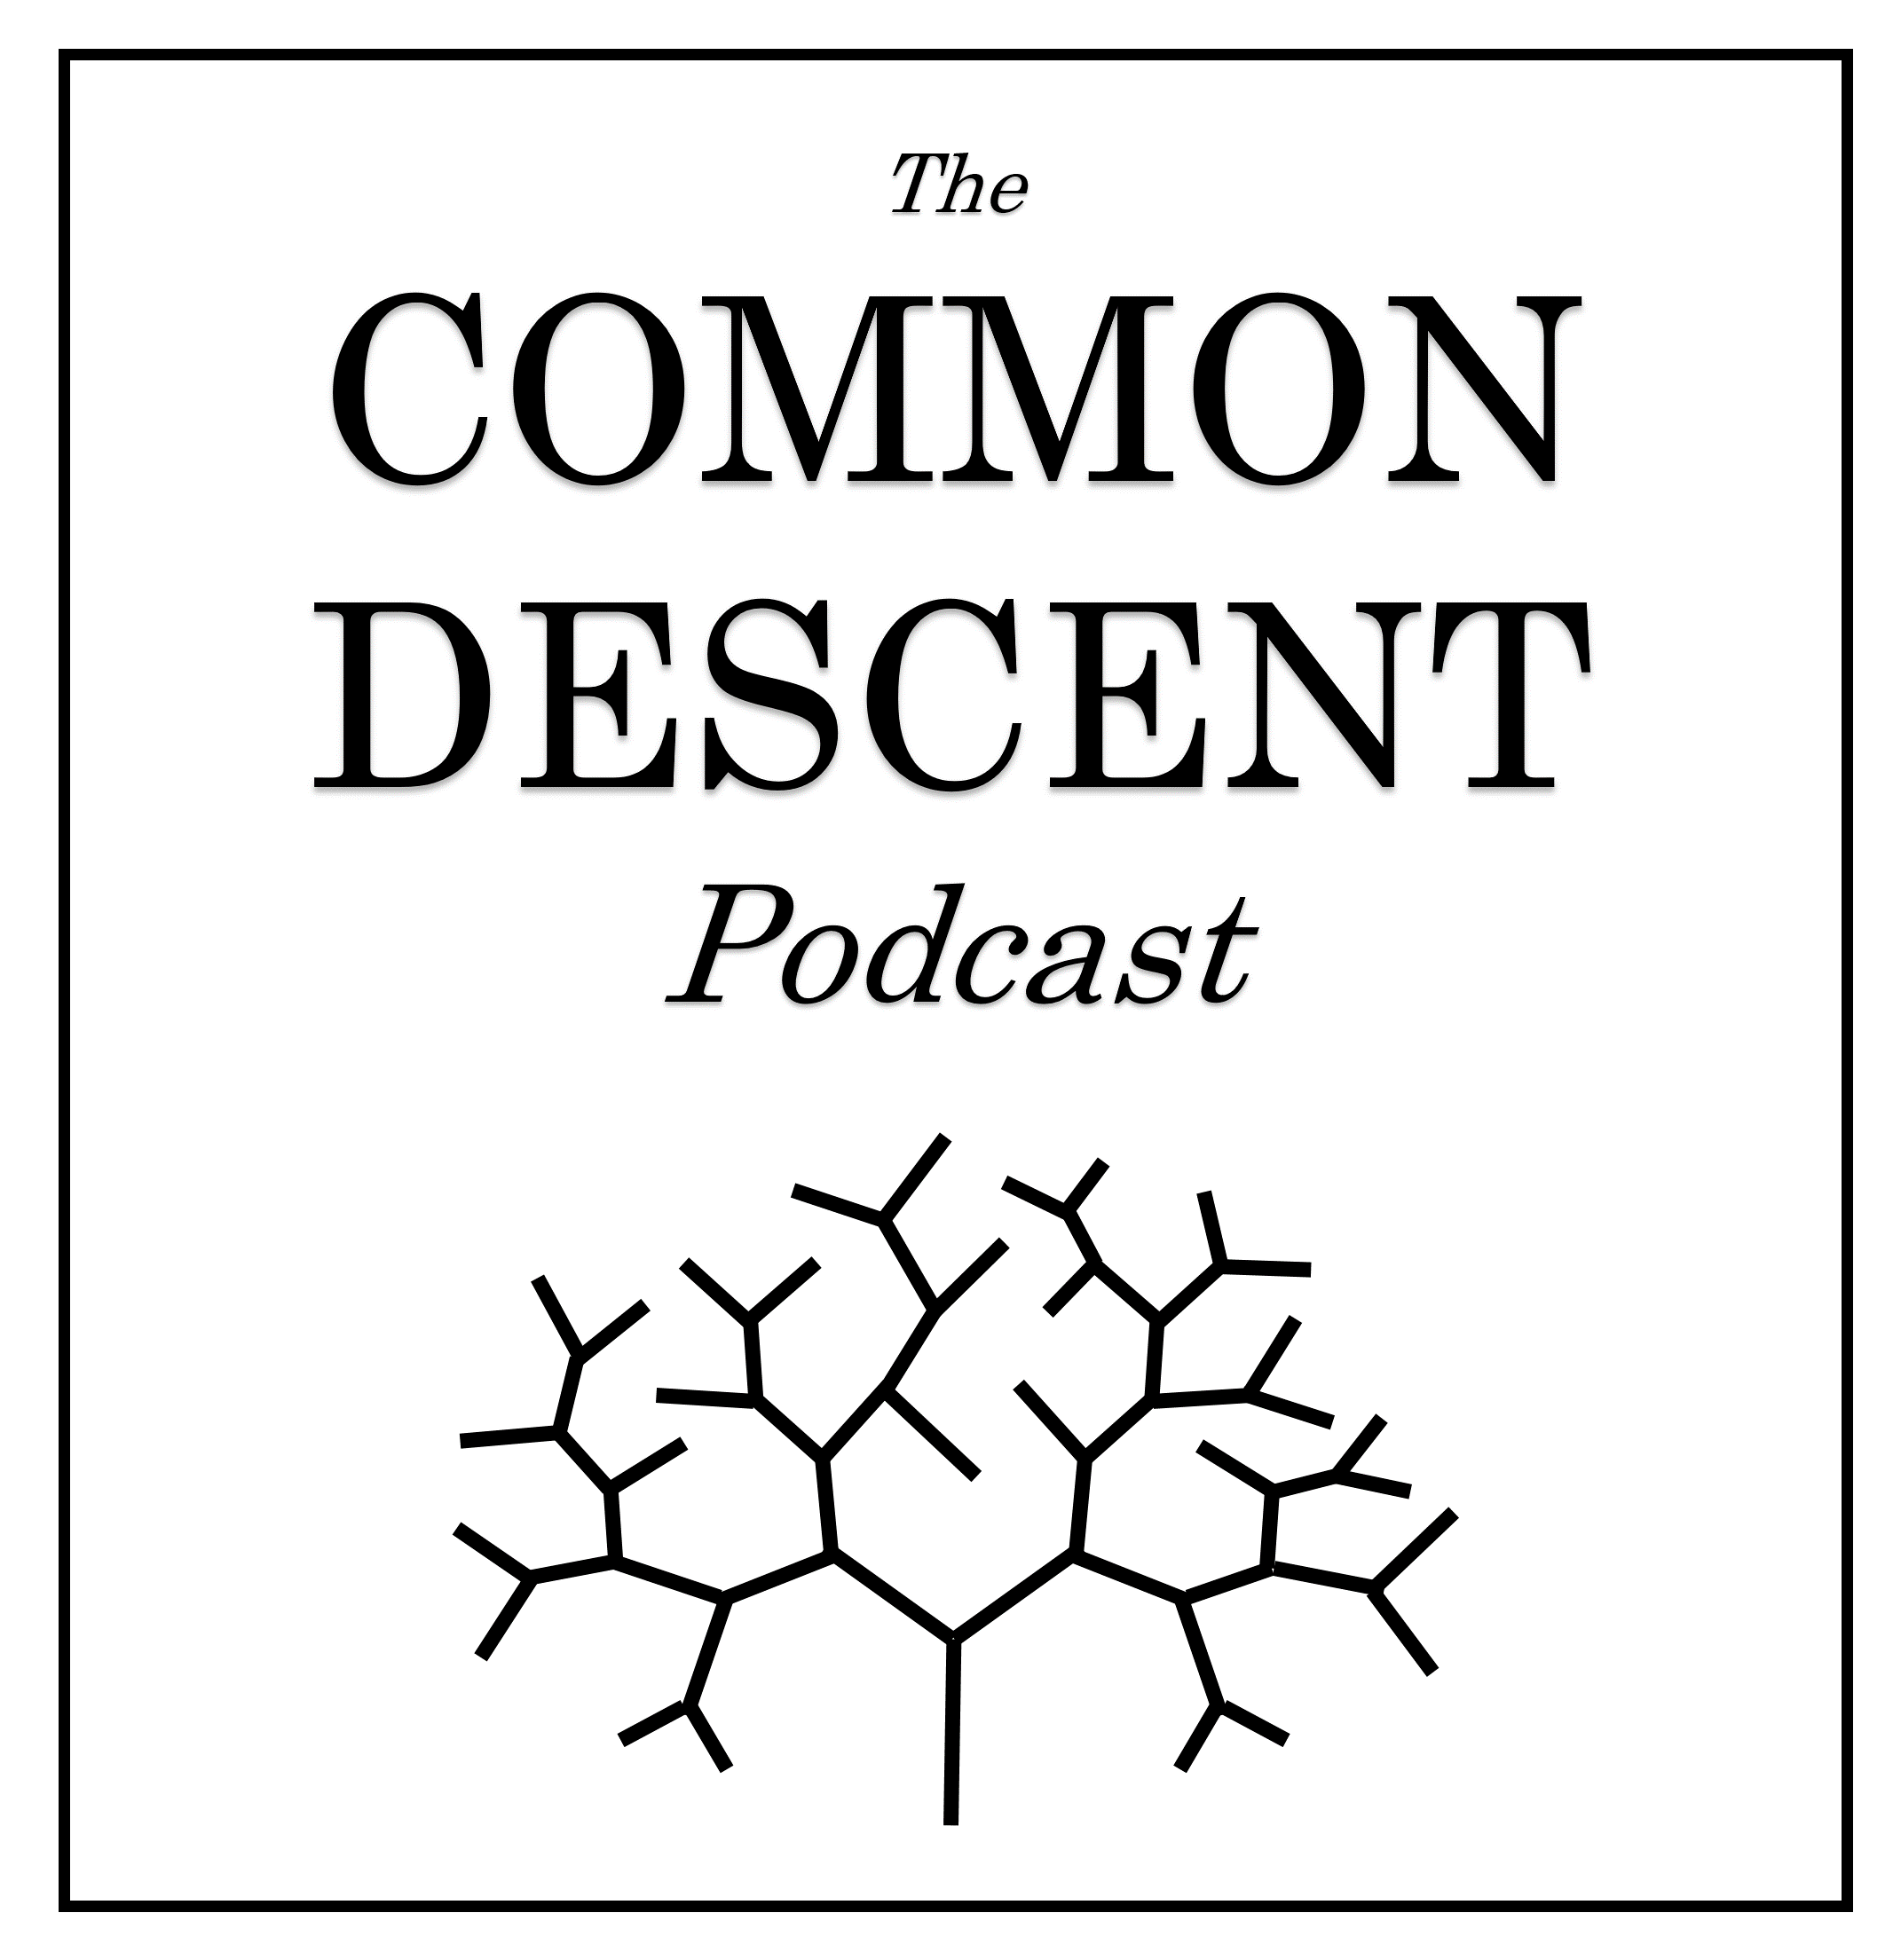 The Common Descent Podcast